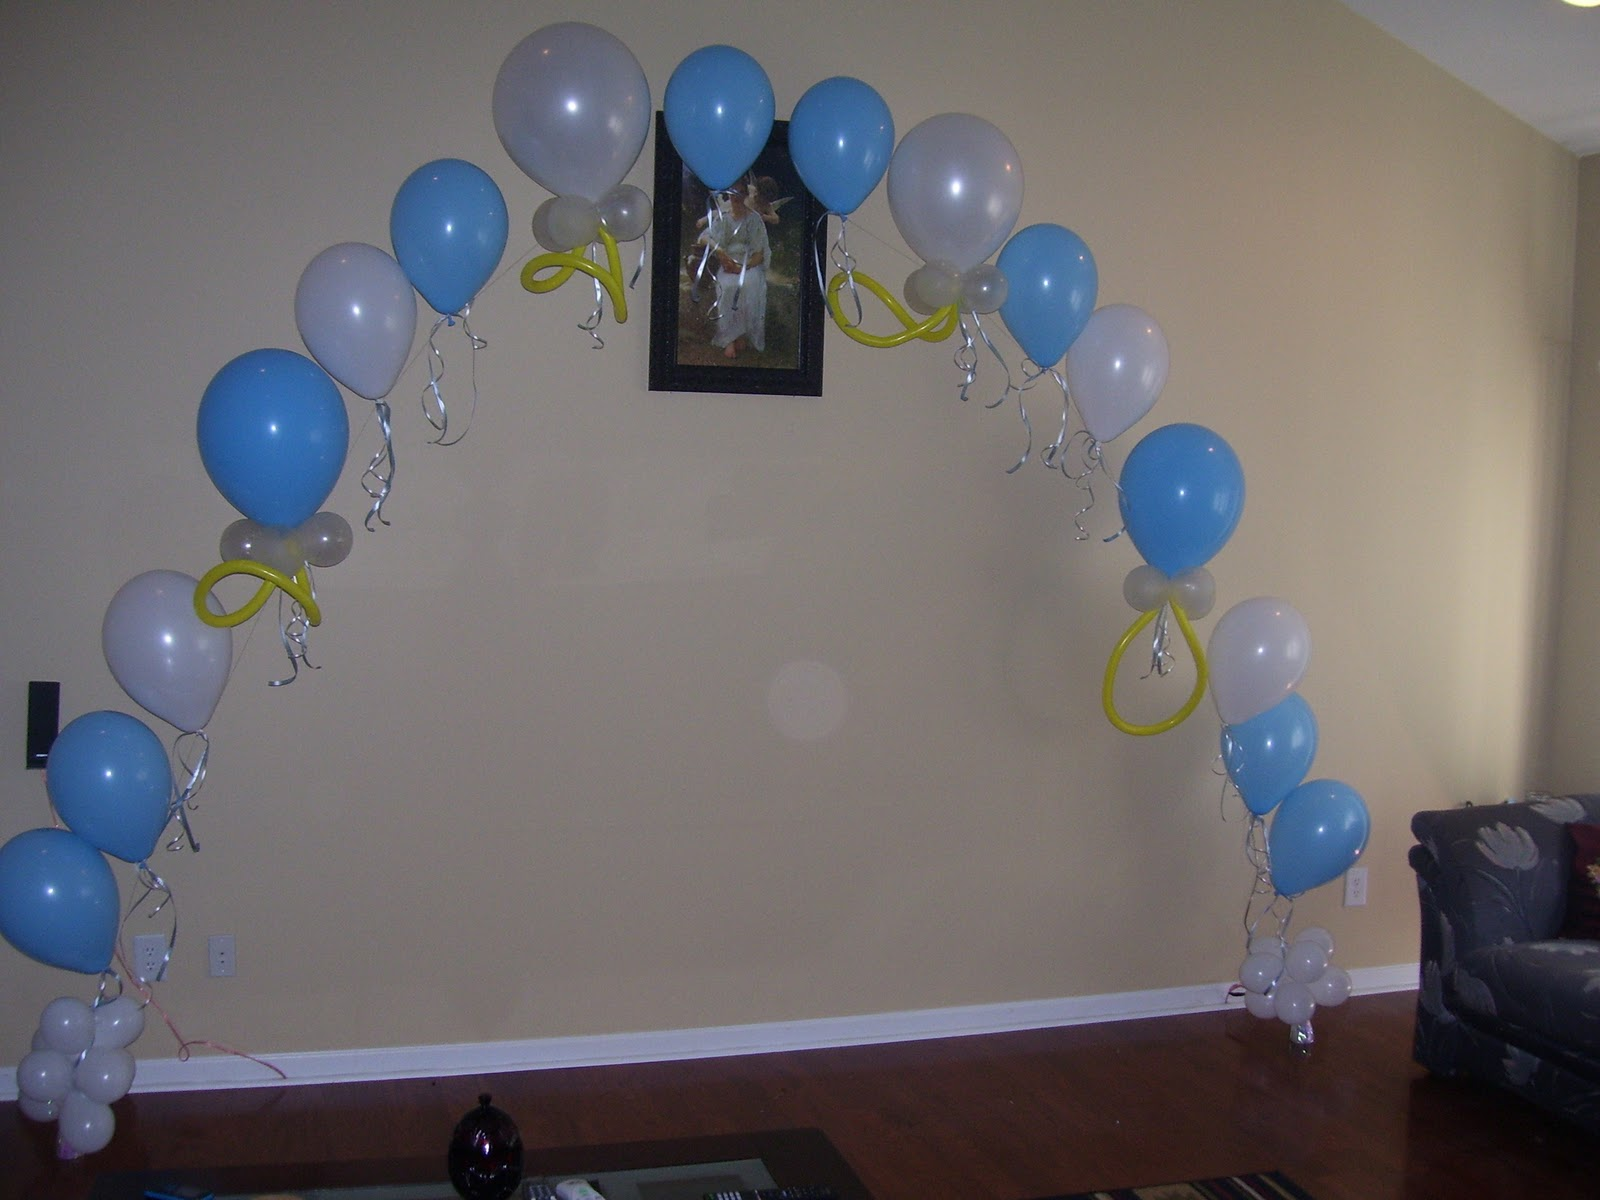 the balloon arch was designed with a pacifier theme